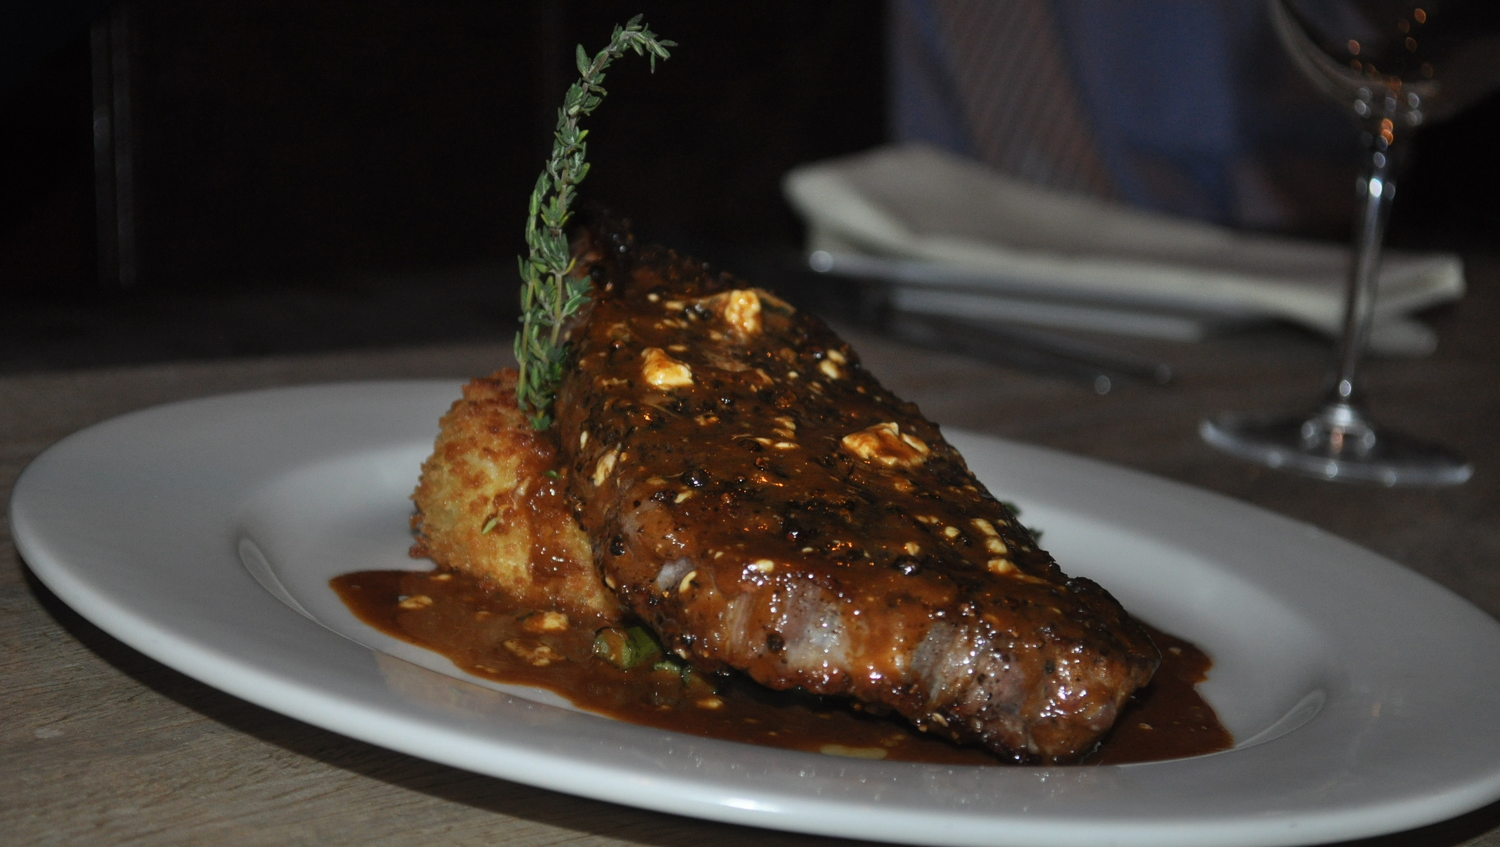 The 14 oz. Peppercorn Sirloin Fromage, from the new Chef's Steak Specialties selection of sirloins, brings zesty flare to the fore.